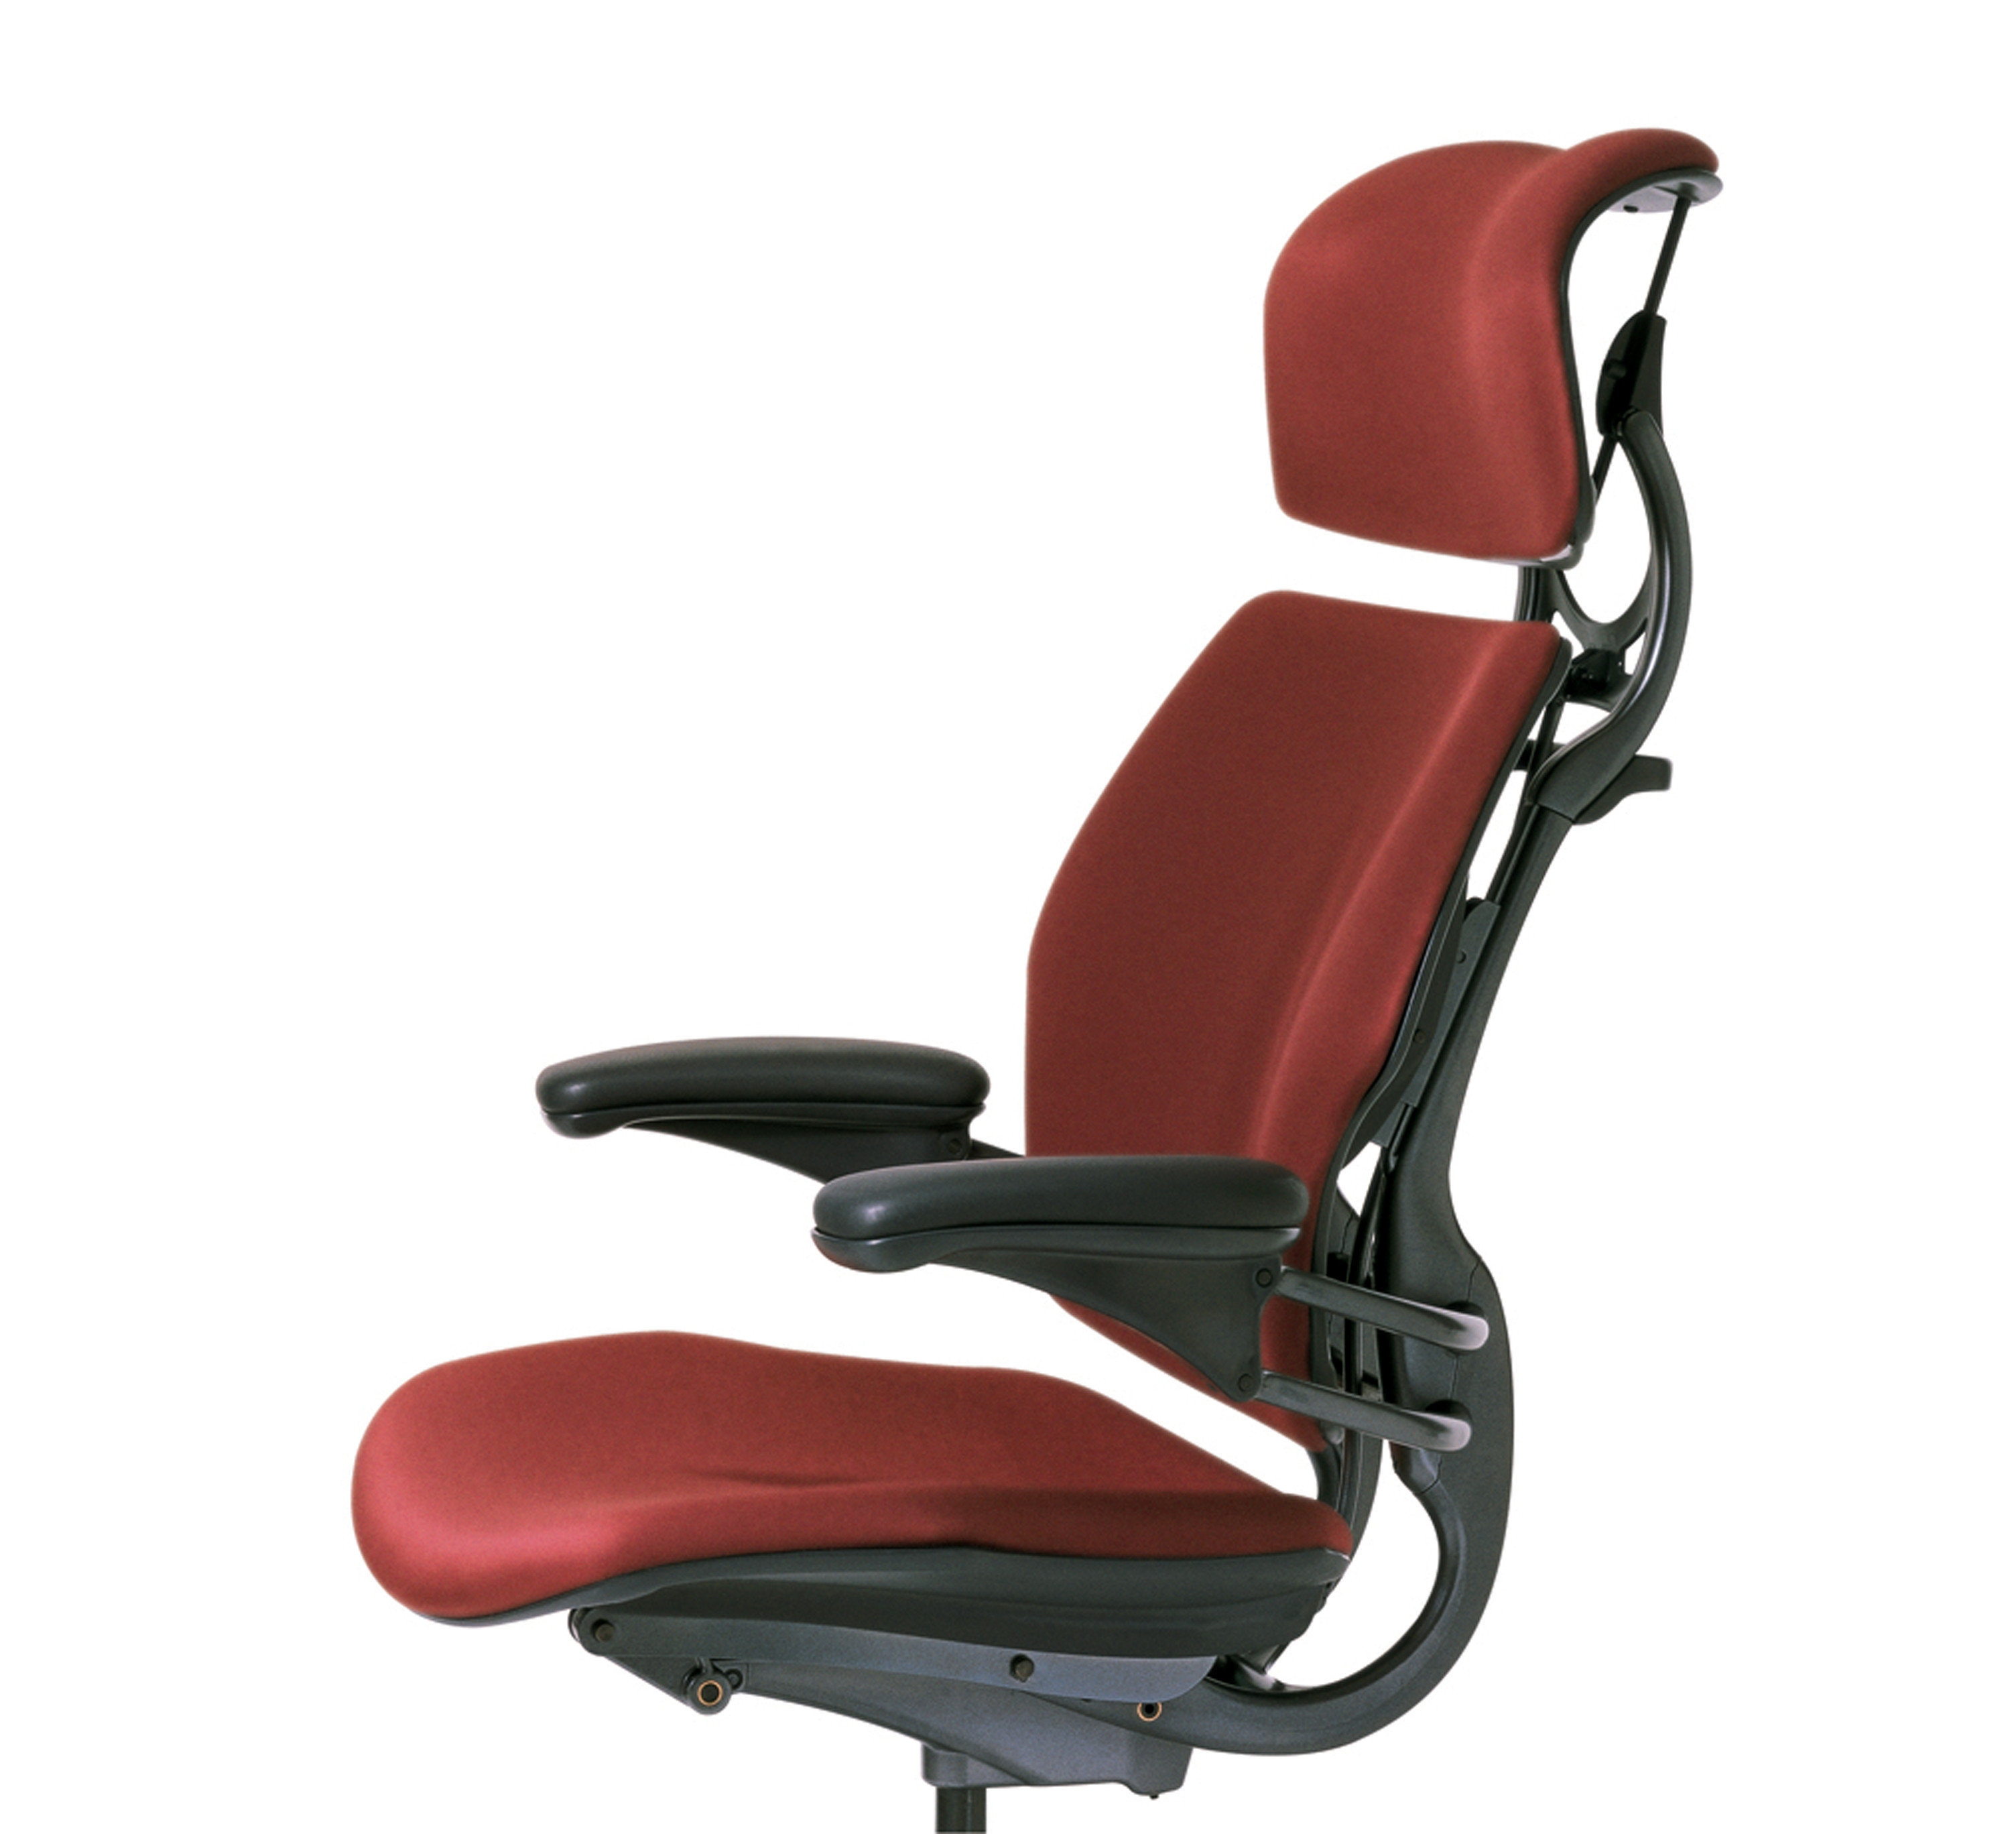 Freedom Task Chair Niels Diffrient Office Chair Apres